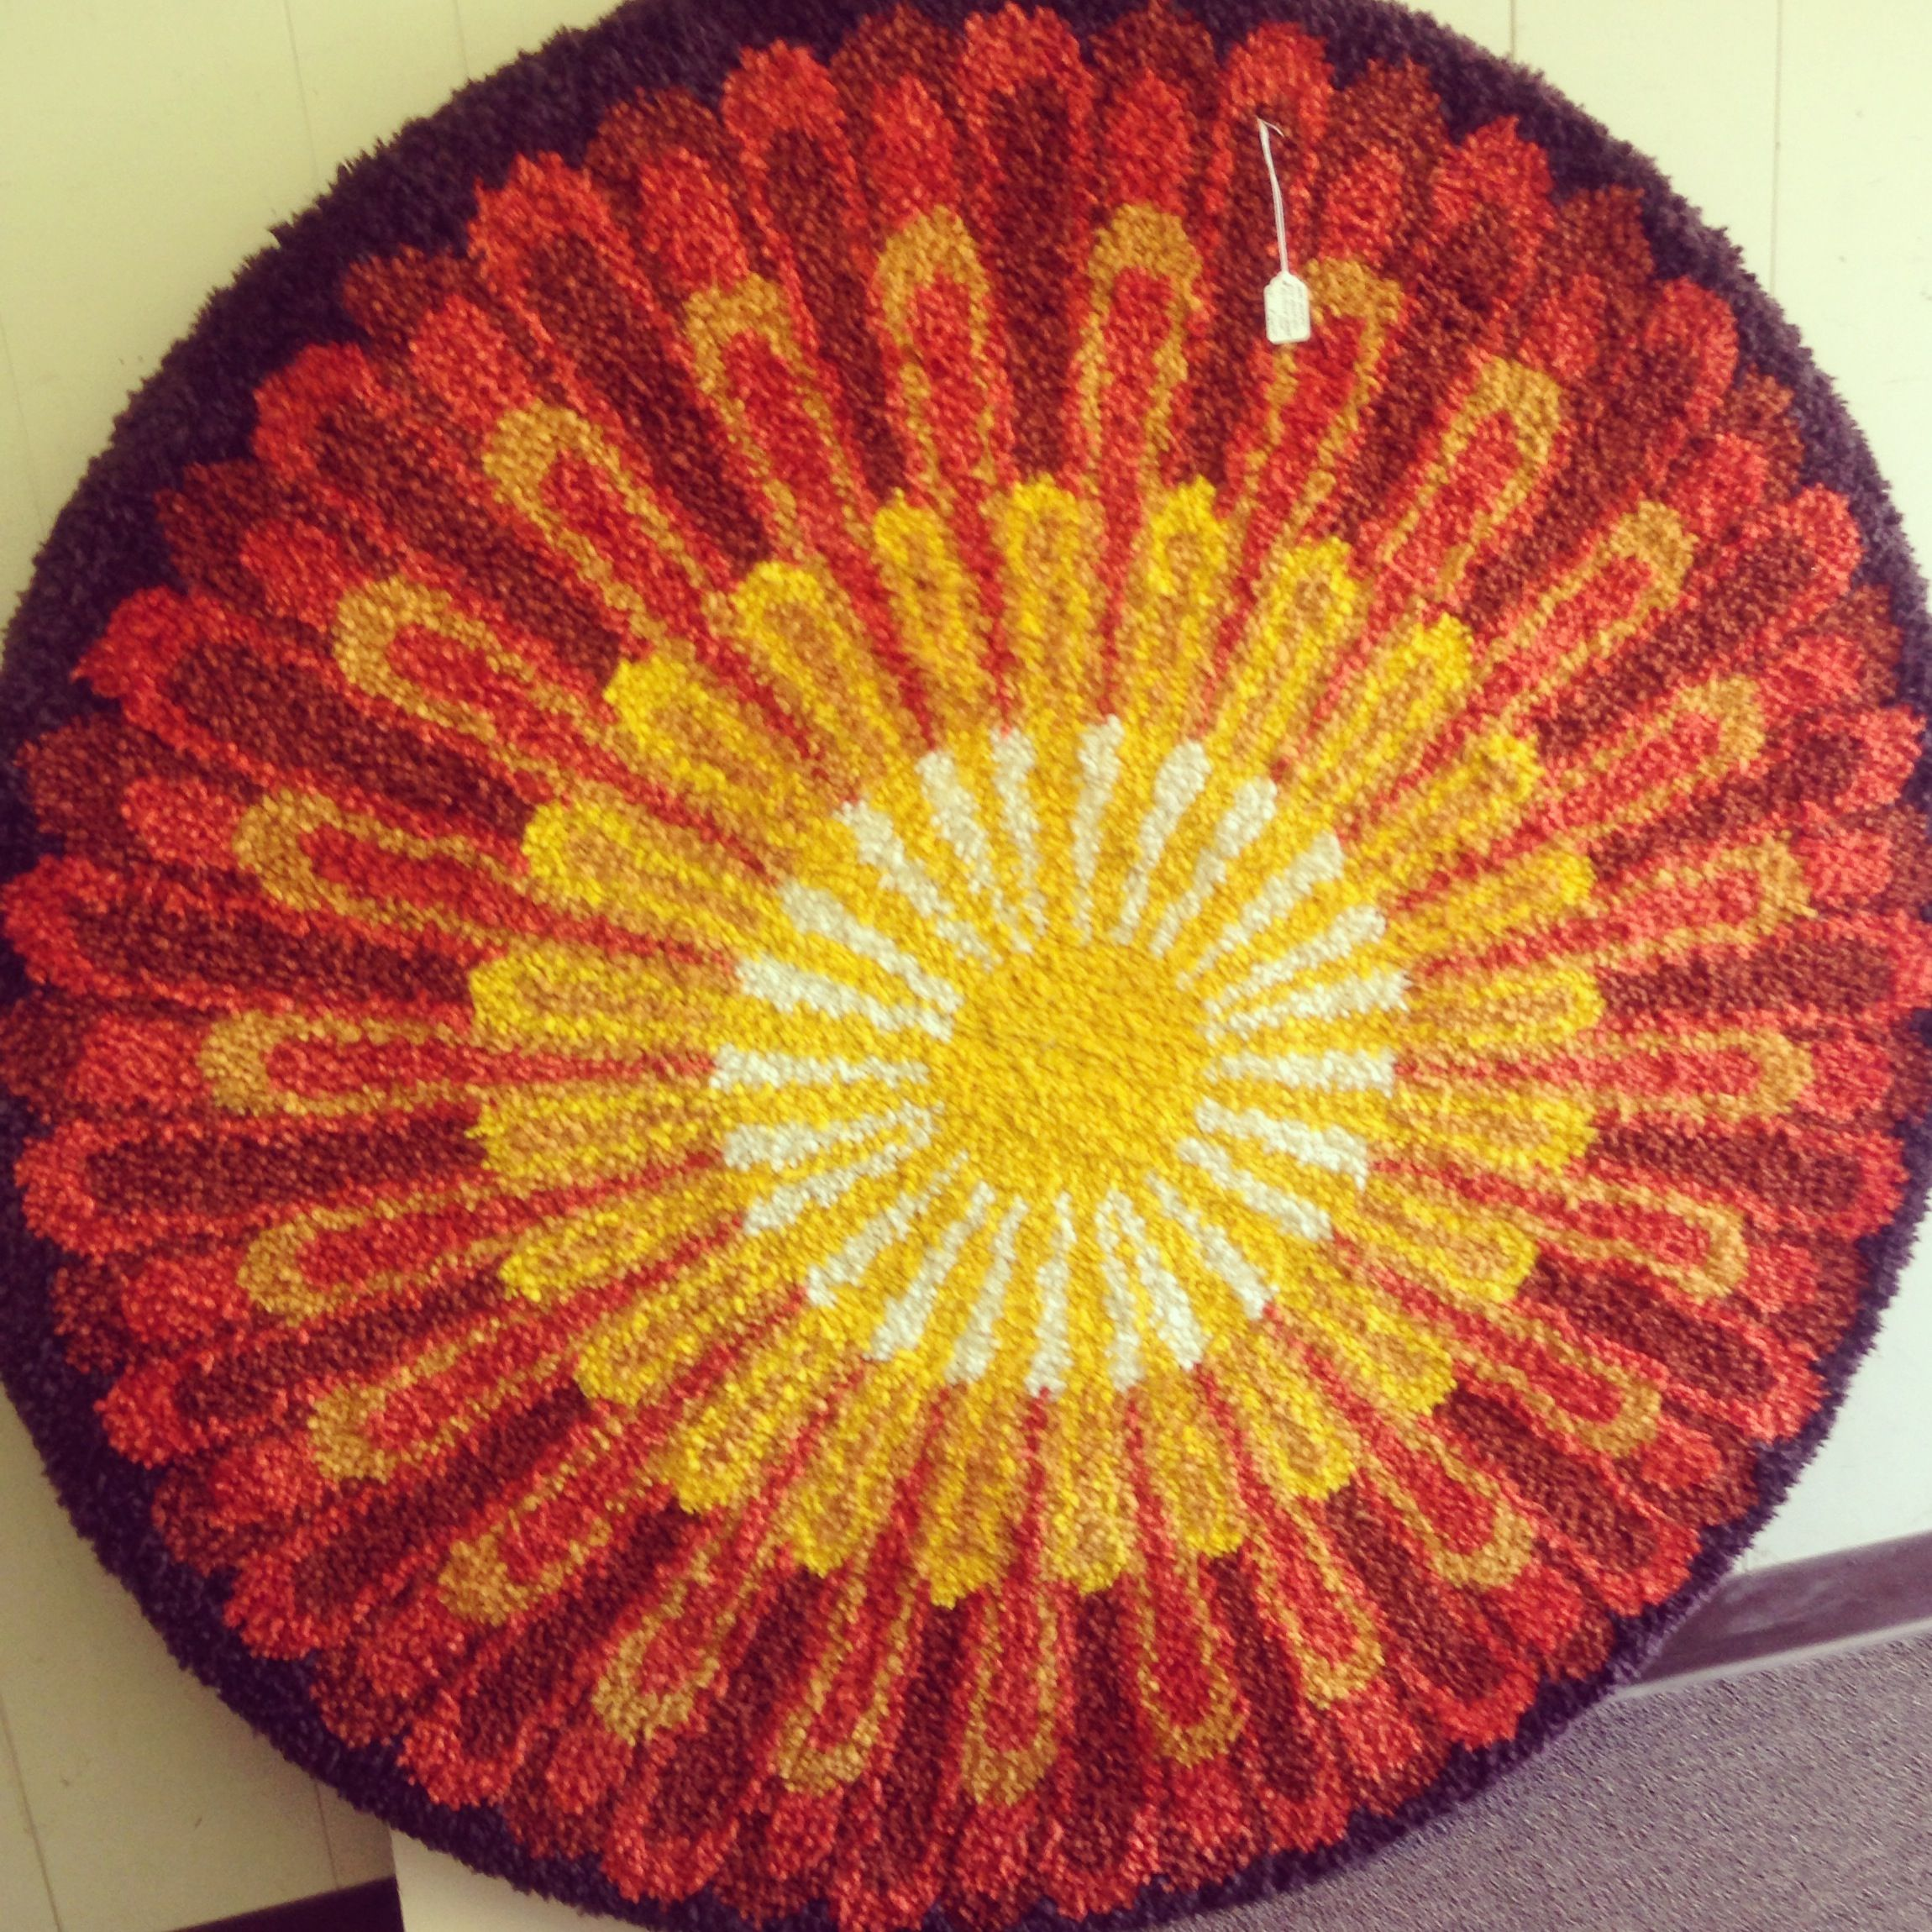 Hand hooked vintage wall hanging. Sunburst with warm golds and reds ...